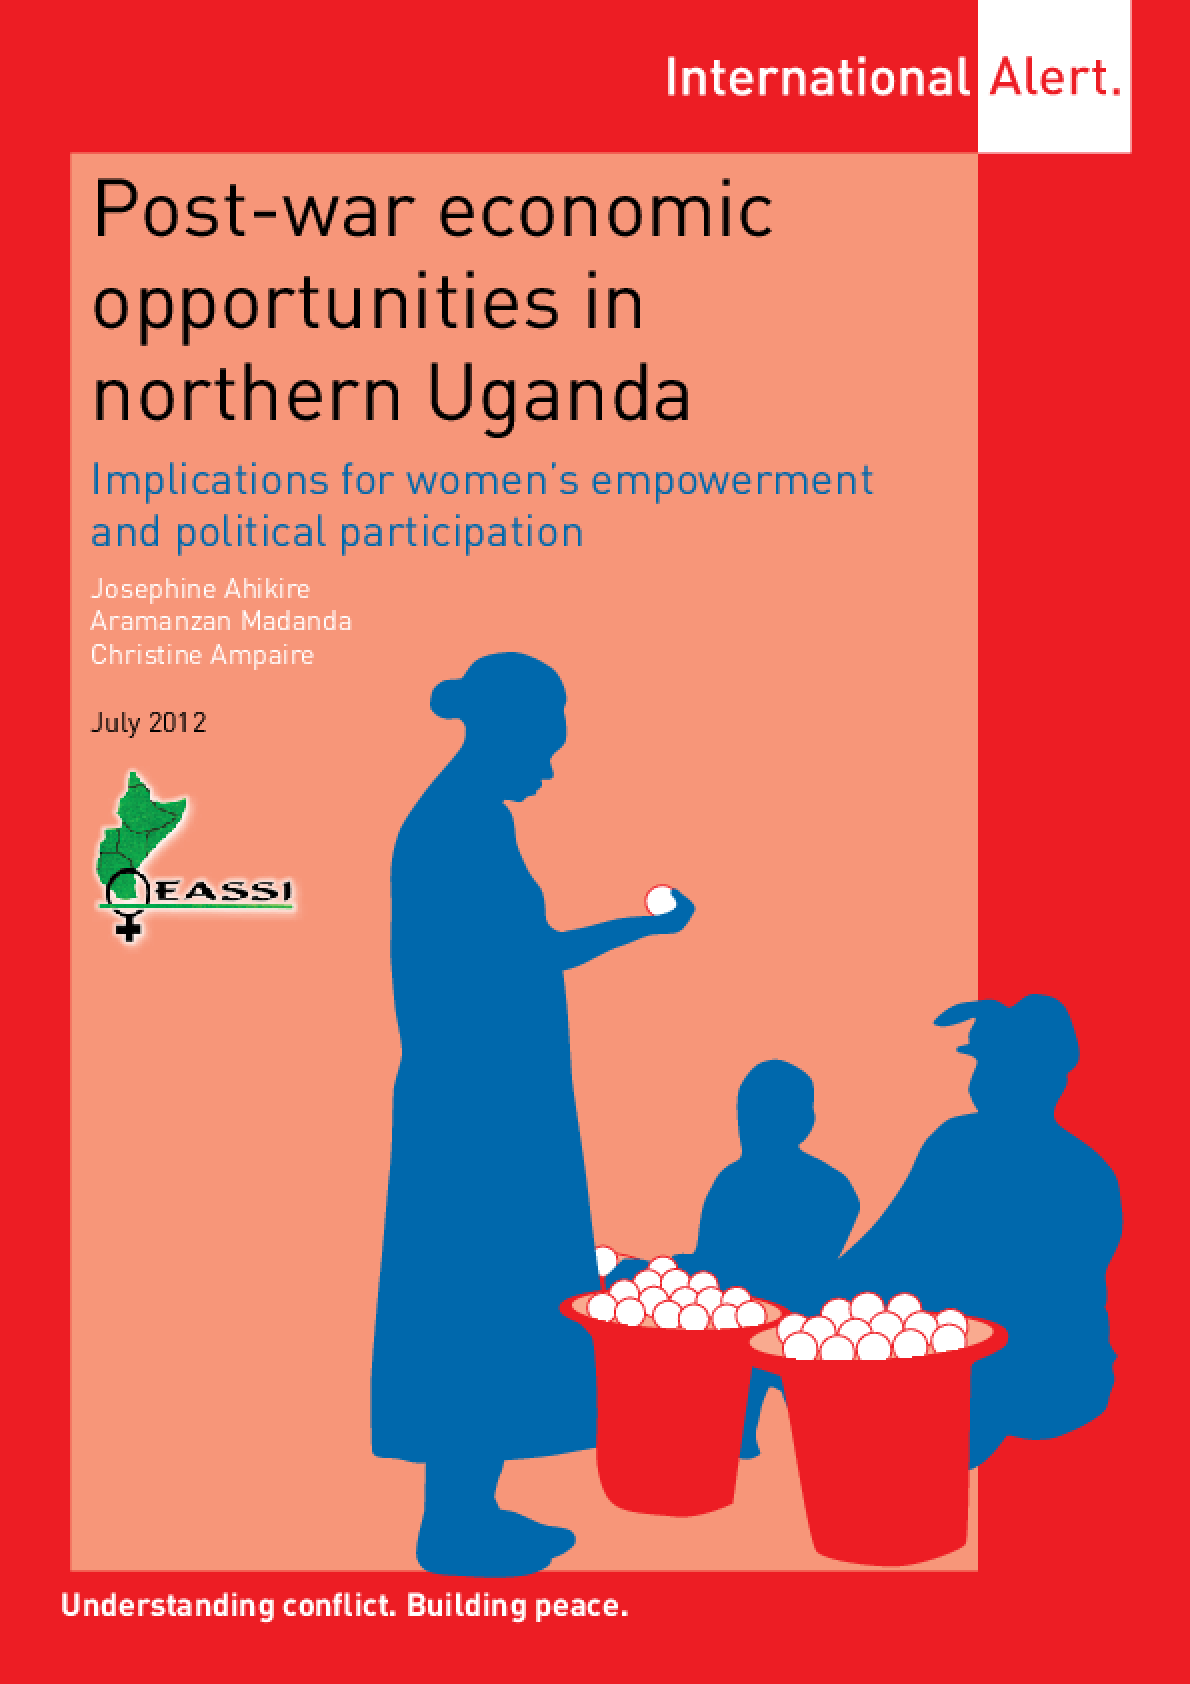 Post-war economic opportunities in northern Uganda: Implications for Women's Empowerment and Political Participation